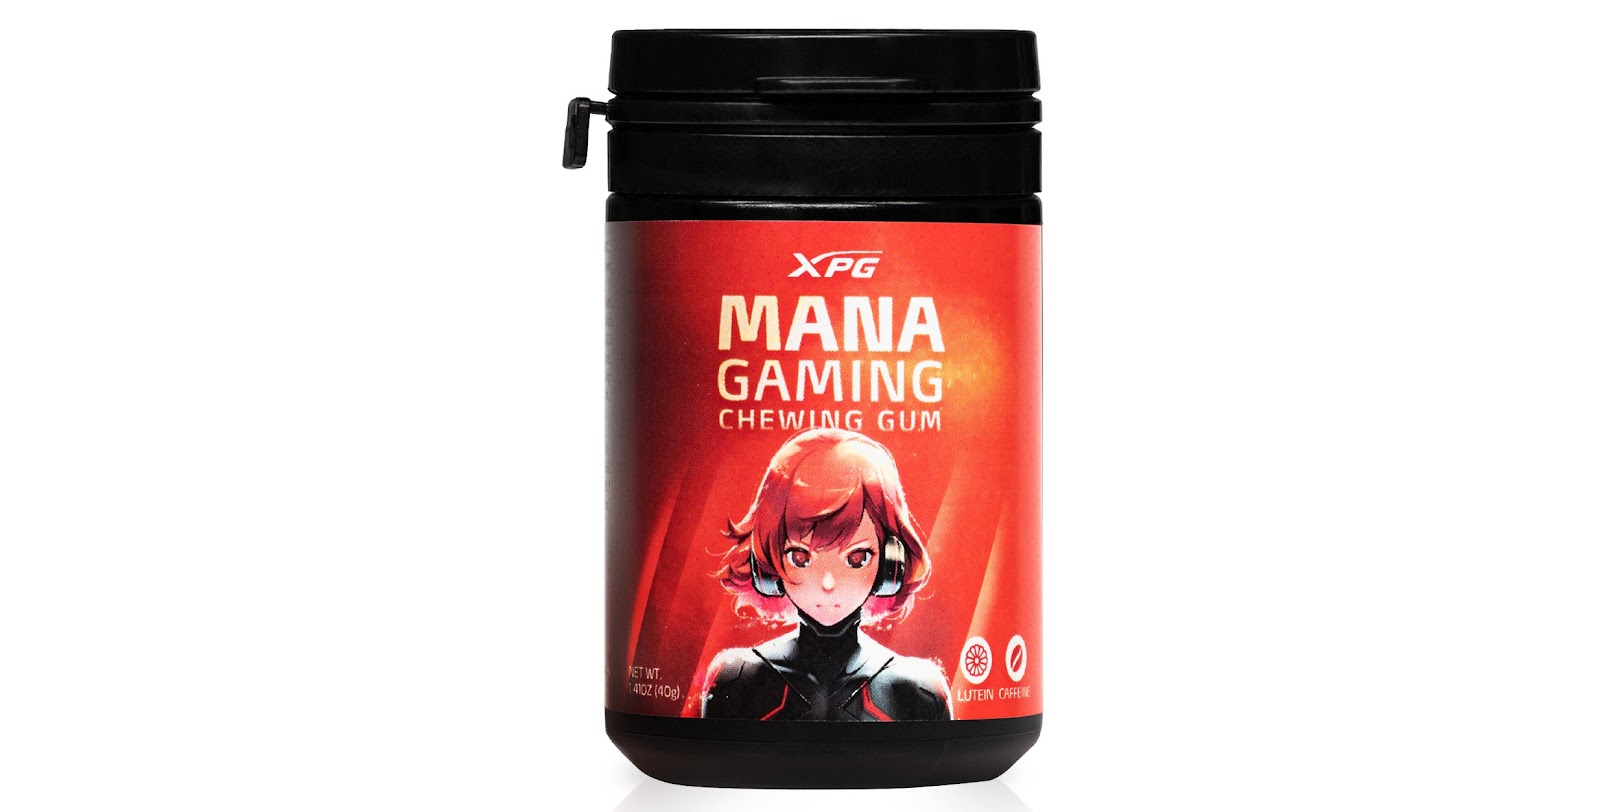 XPG mana caffeinated chewing gum